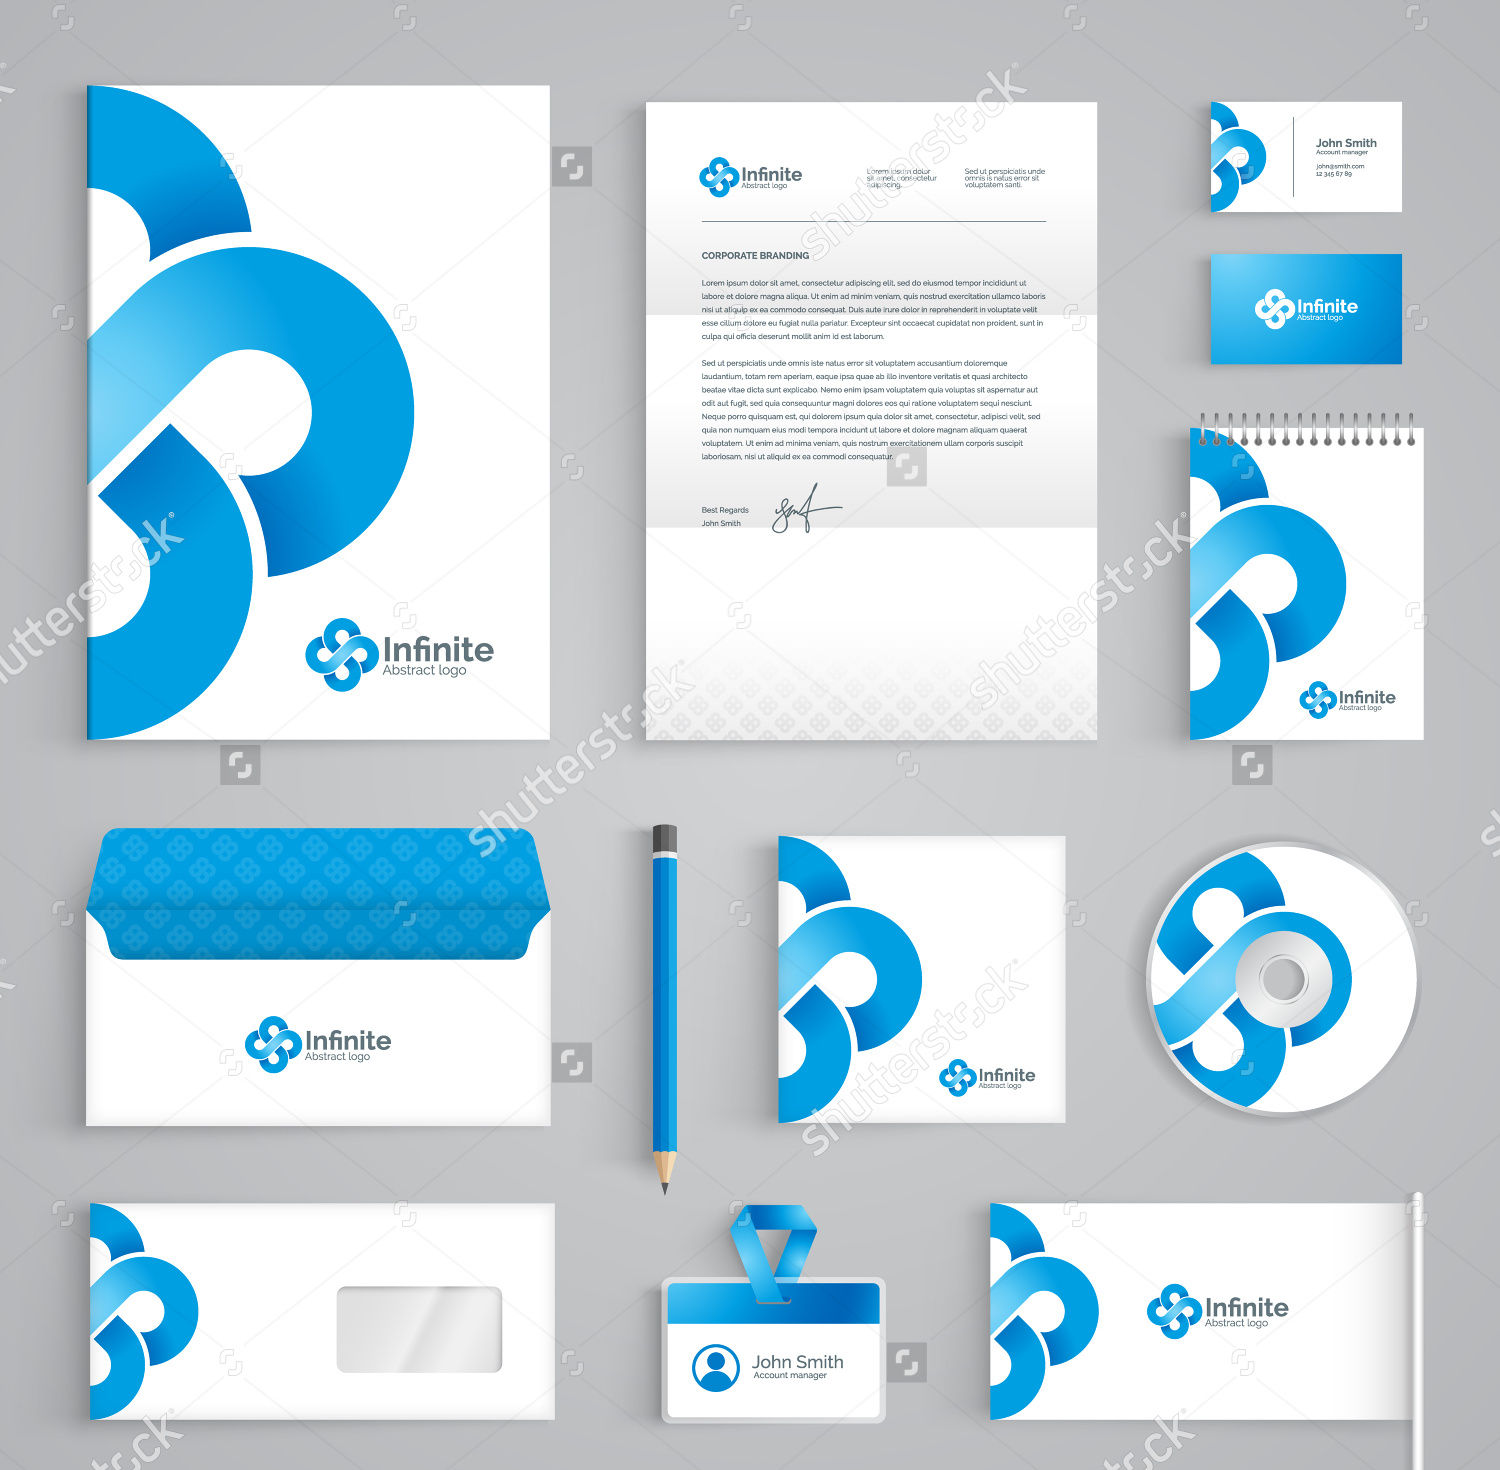 corporate brand stationery identity design